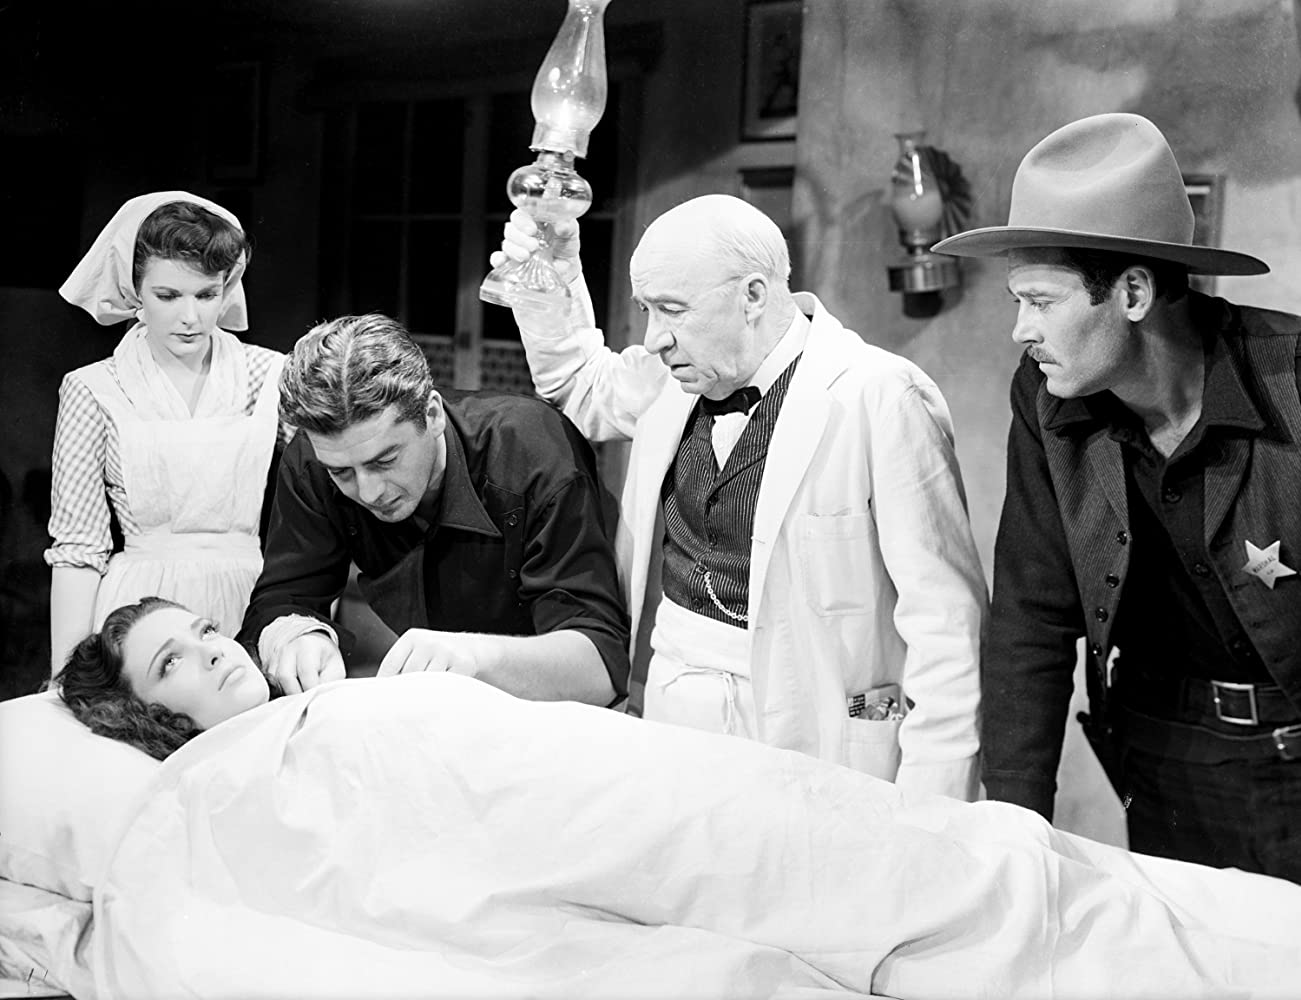 Henry Fonda, Linda Darnell, Victor Mature, Cathy Downs, and J. Farrell MacDonald in My Darling Clementine (1946)